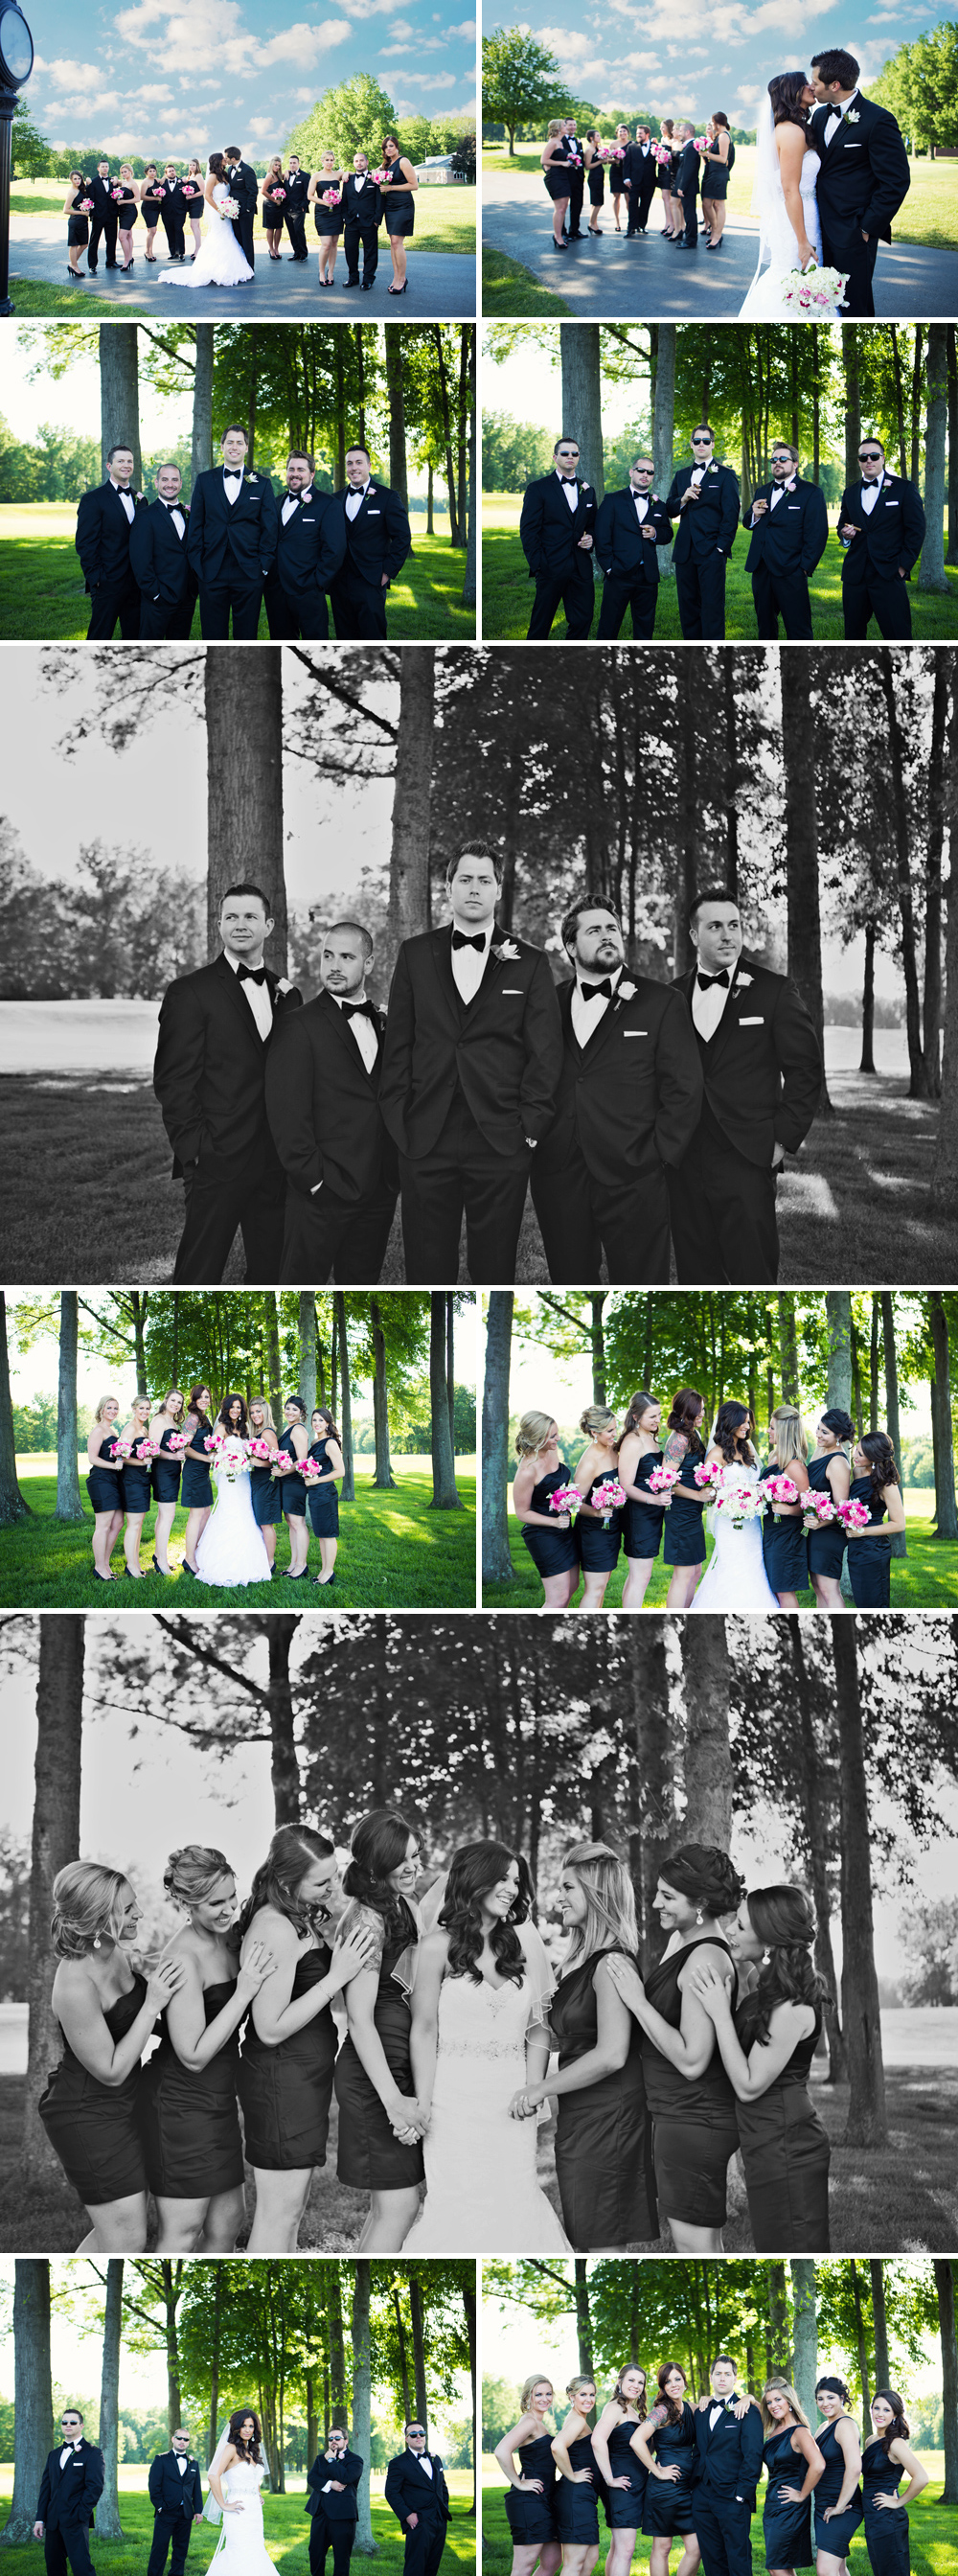 This bridal party, though...so much fun!